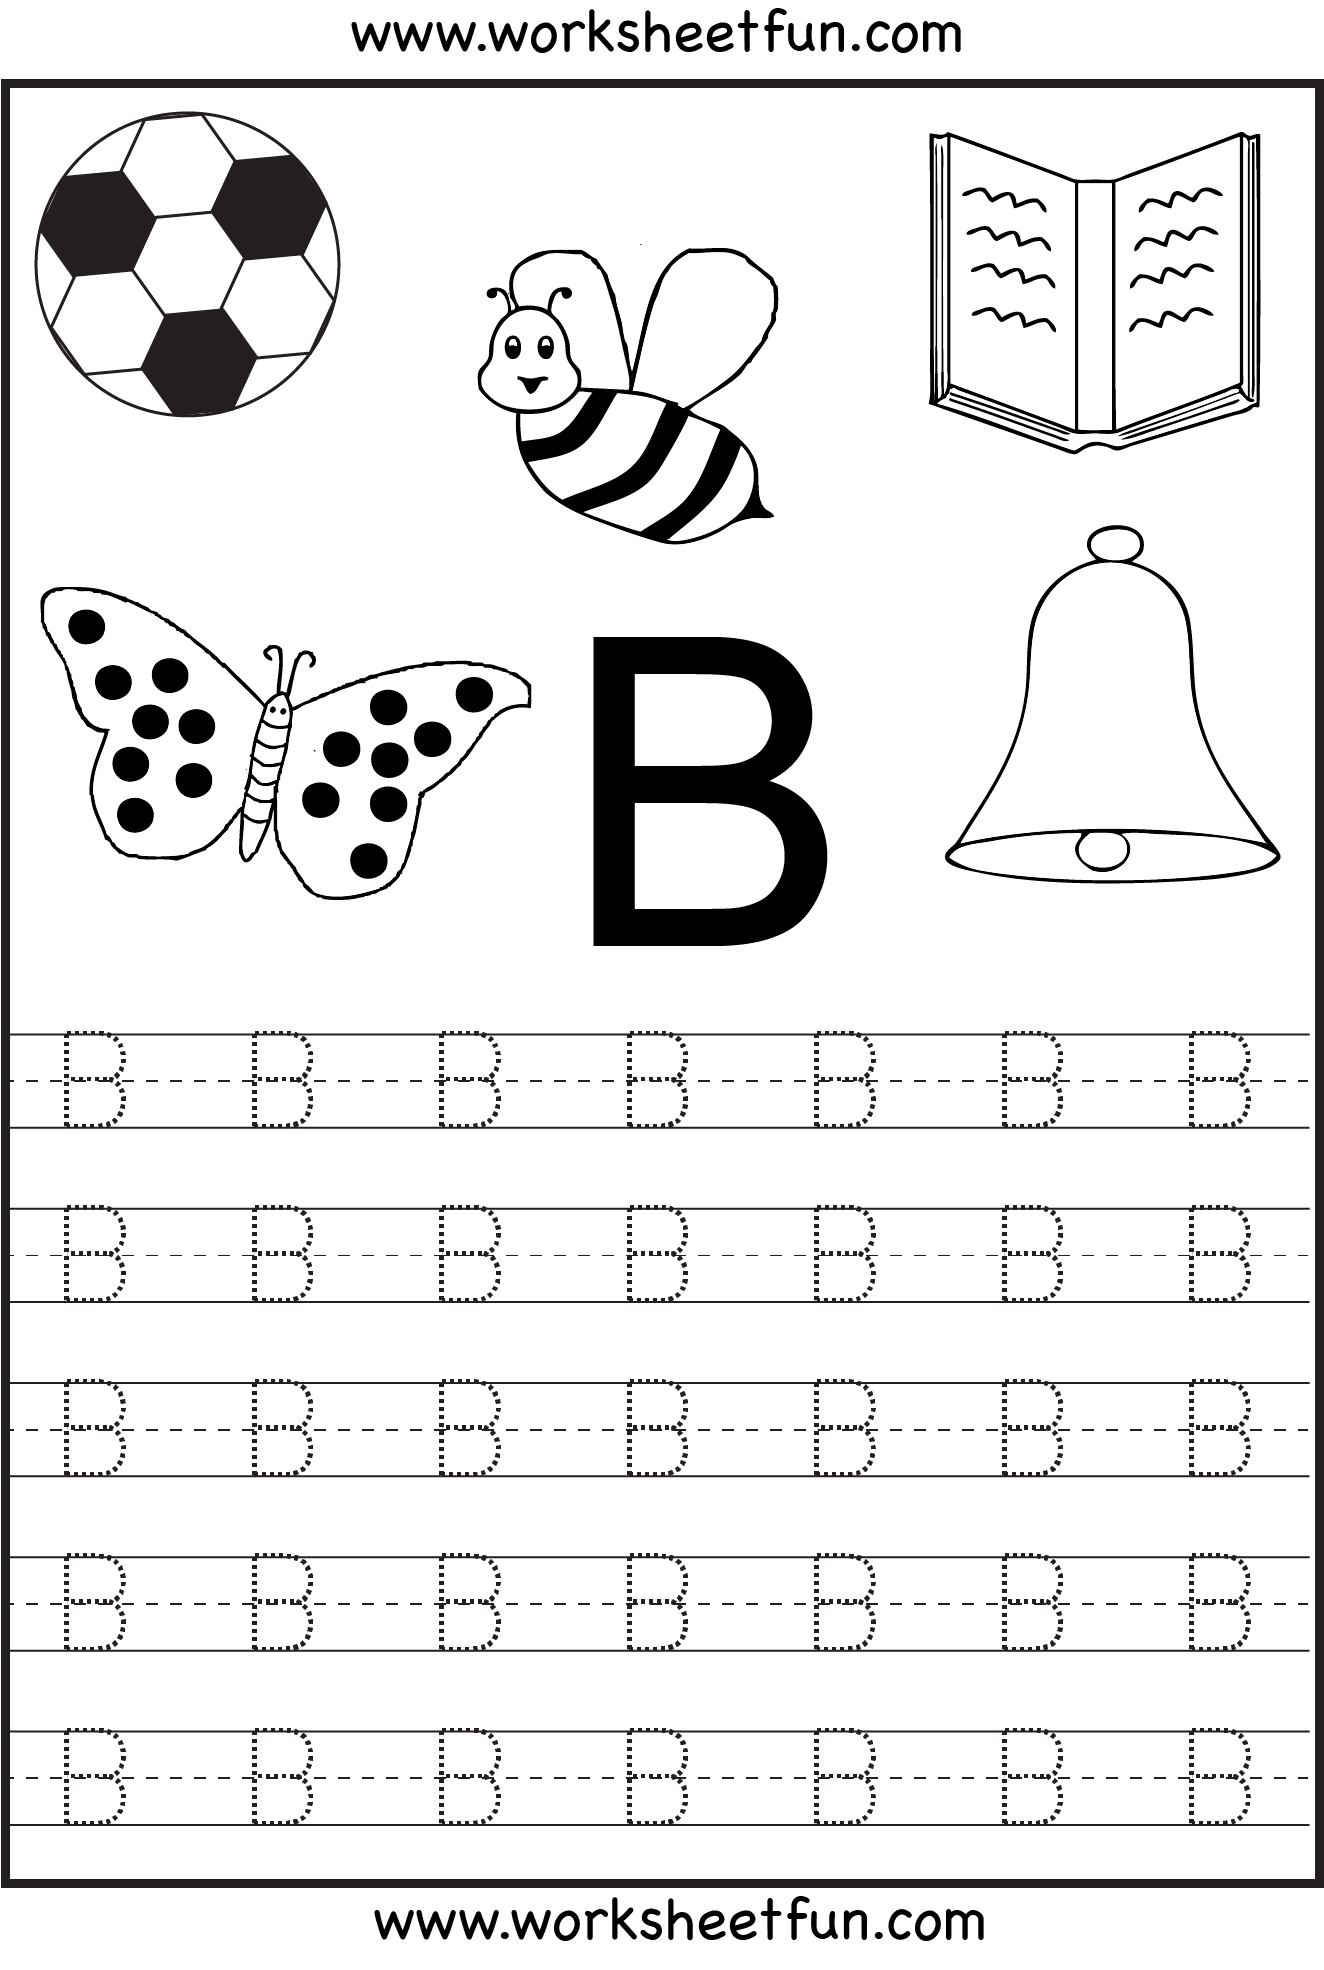 Worksheets Free Letter Worksheets For Kindergarten action preschool alphabet and on pinterest free printable letter tracing worksheets for kindergarten 26 worksheets